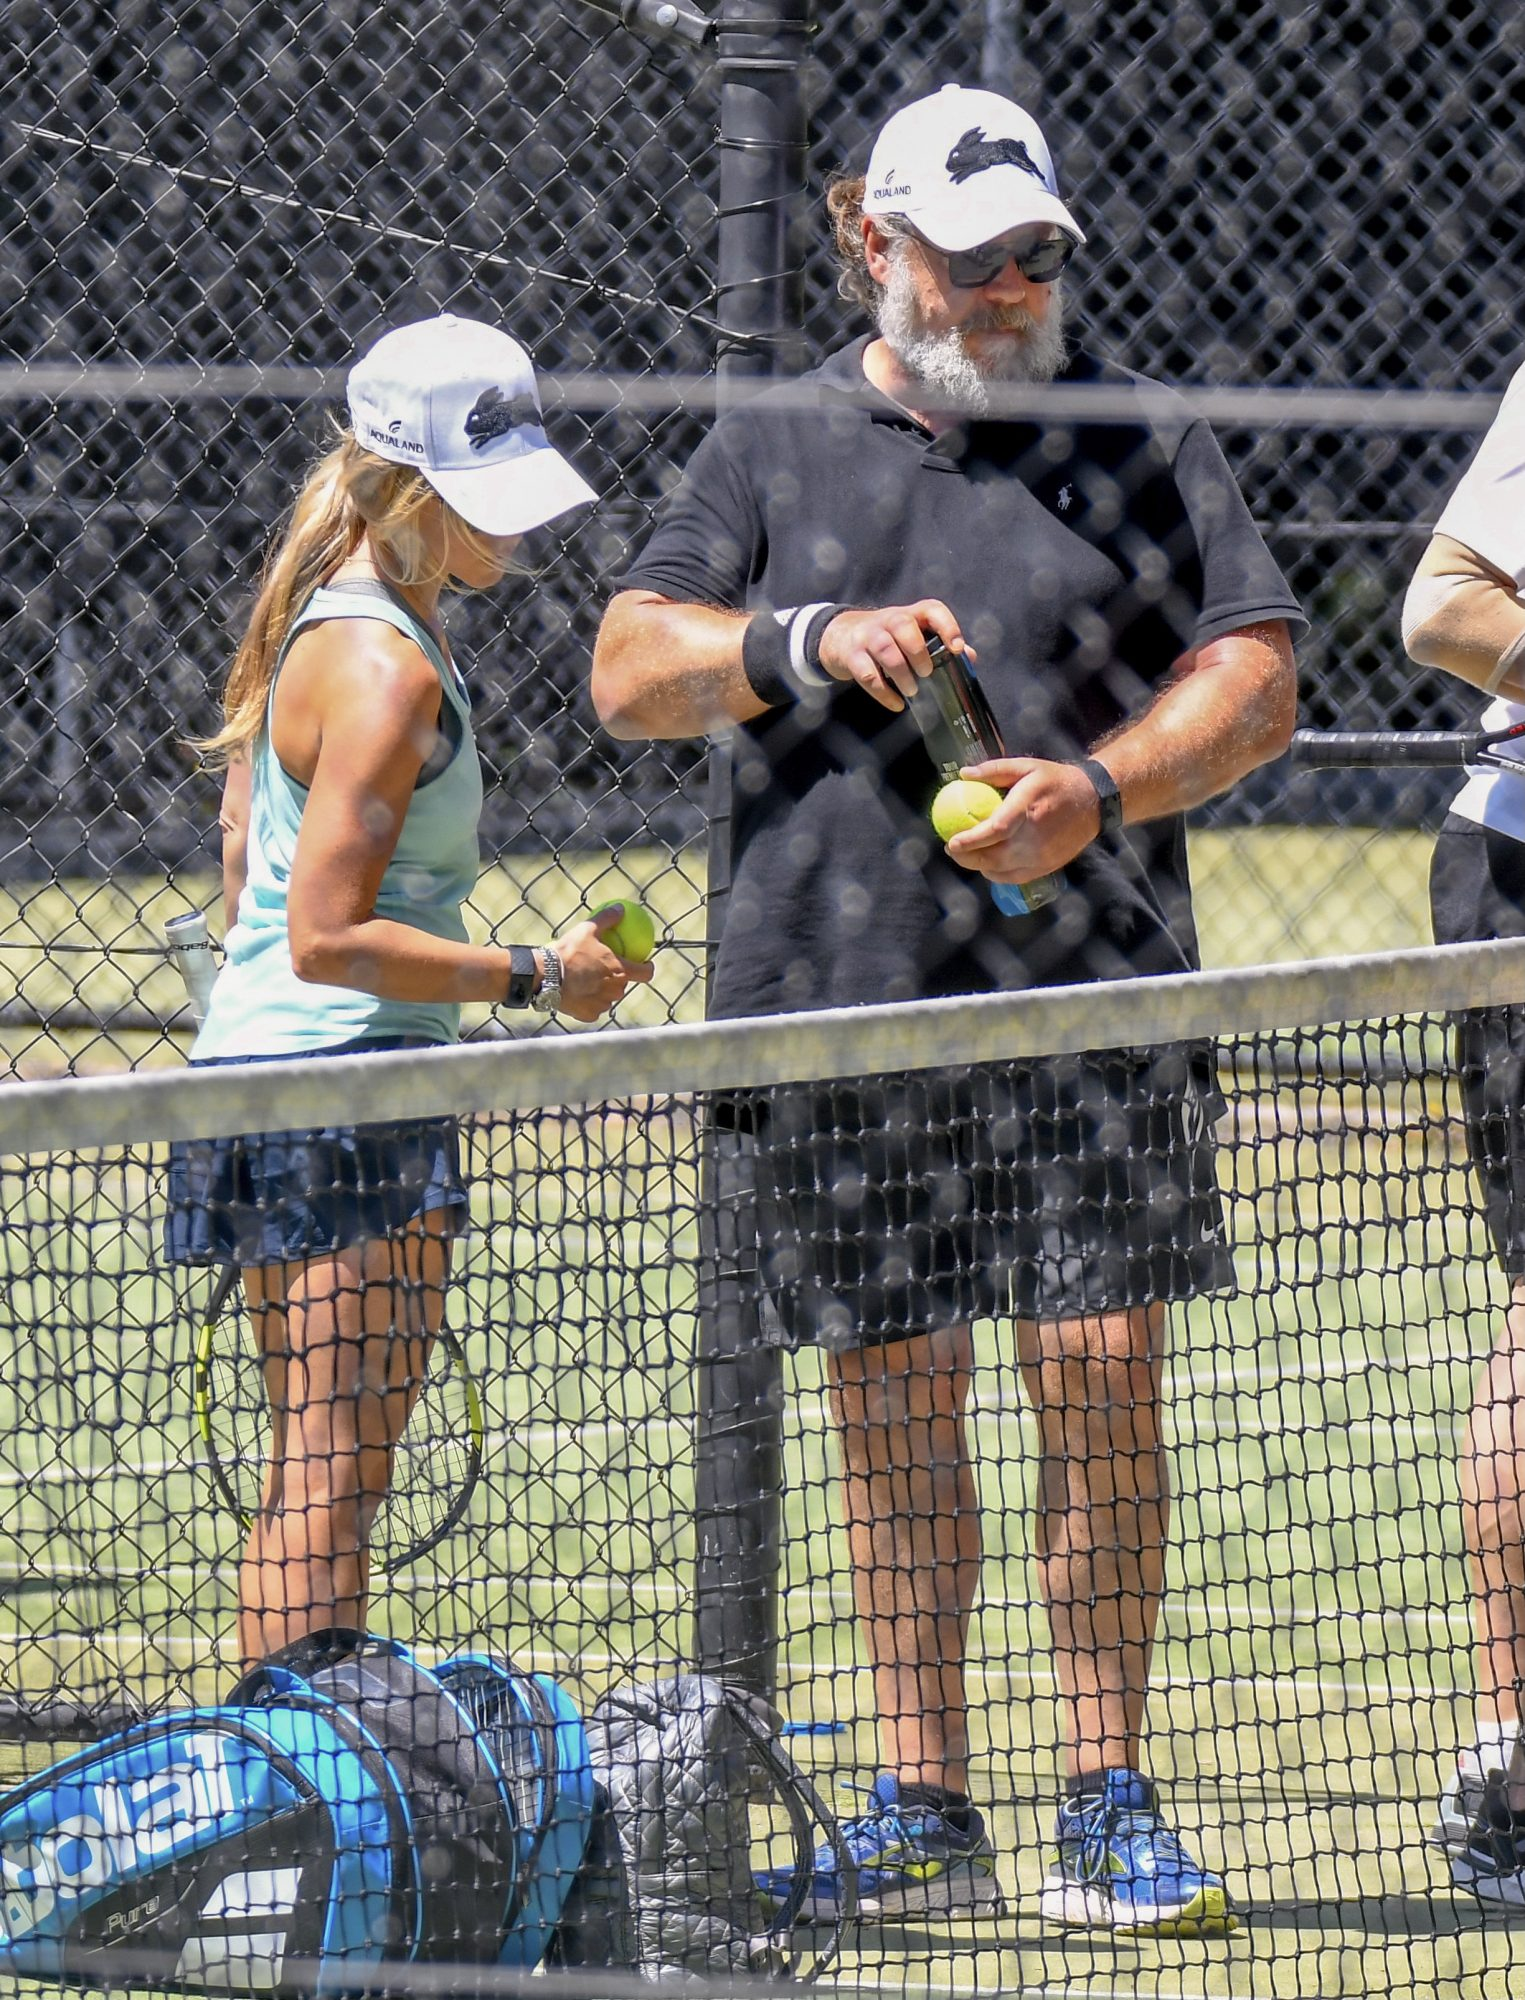 Russell Crowe and his 30 Year Old Girlfriend, Britney Theriot, on the Tennis Court